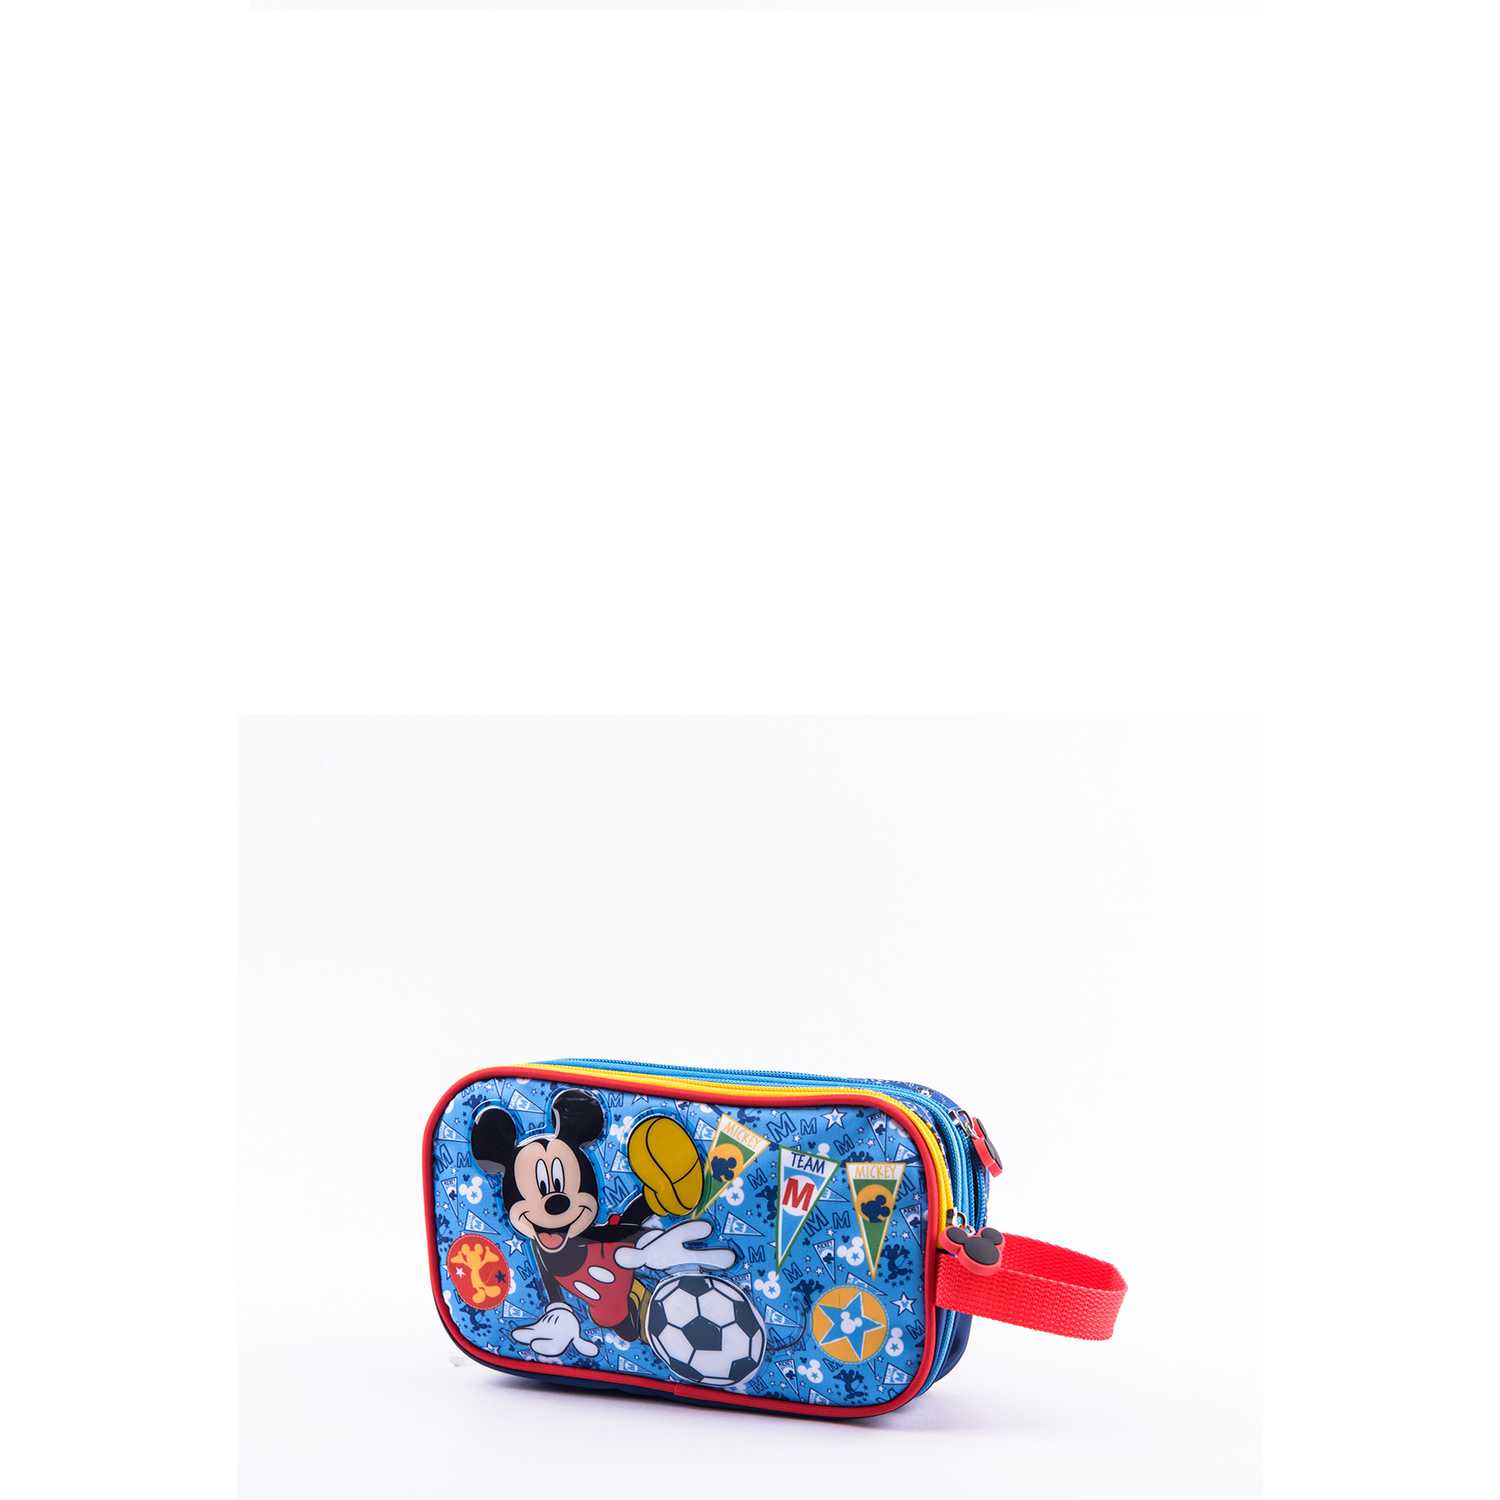 Cartuchera de Niño Scool Azul 9 scool mickey cart tela c/pvc d/cierre